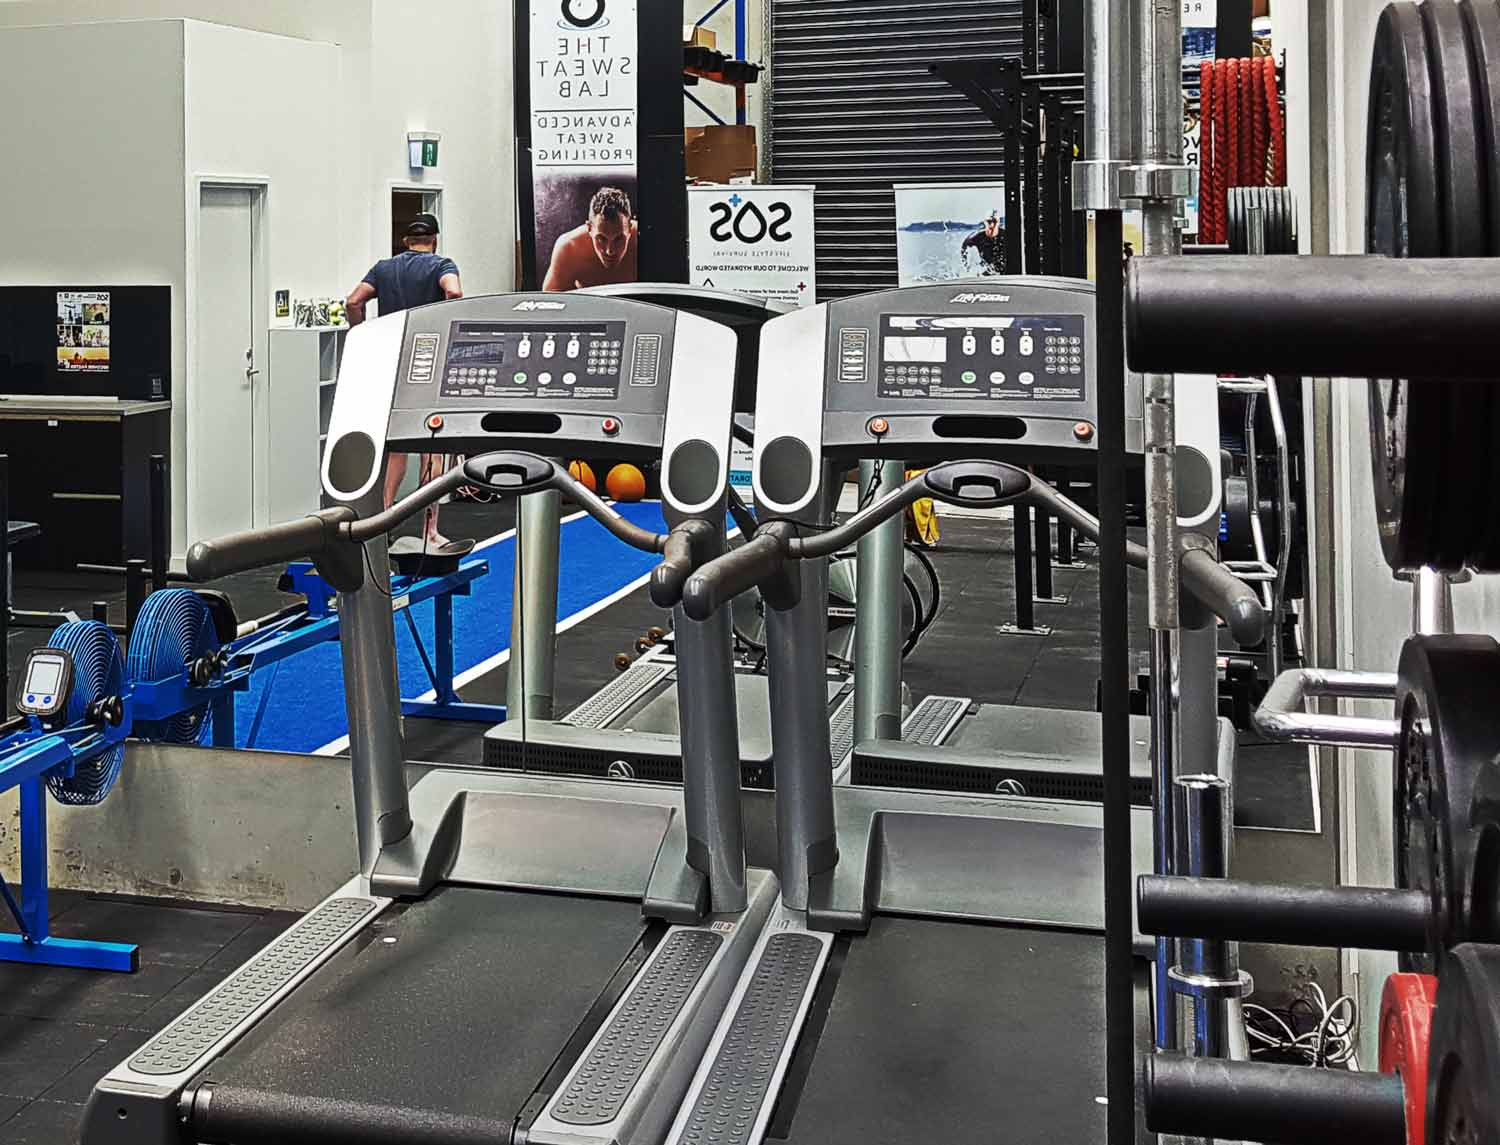 Being active in the sweat lab faciliy in Melbourne Australia